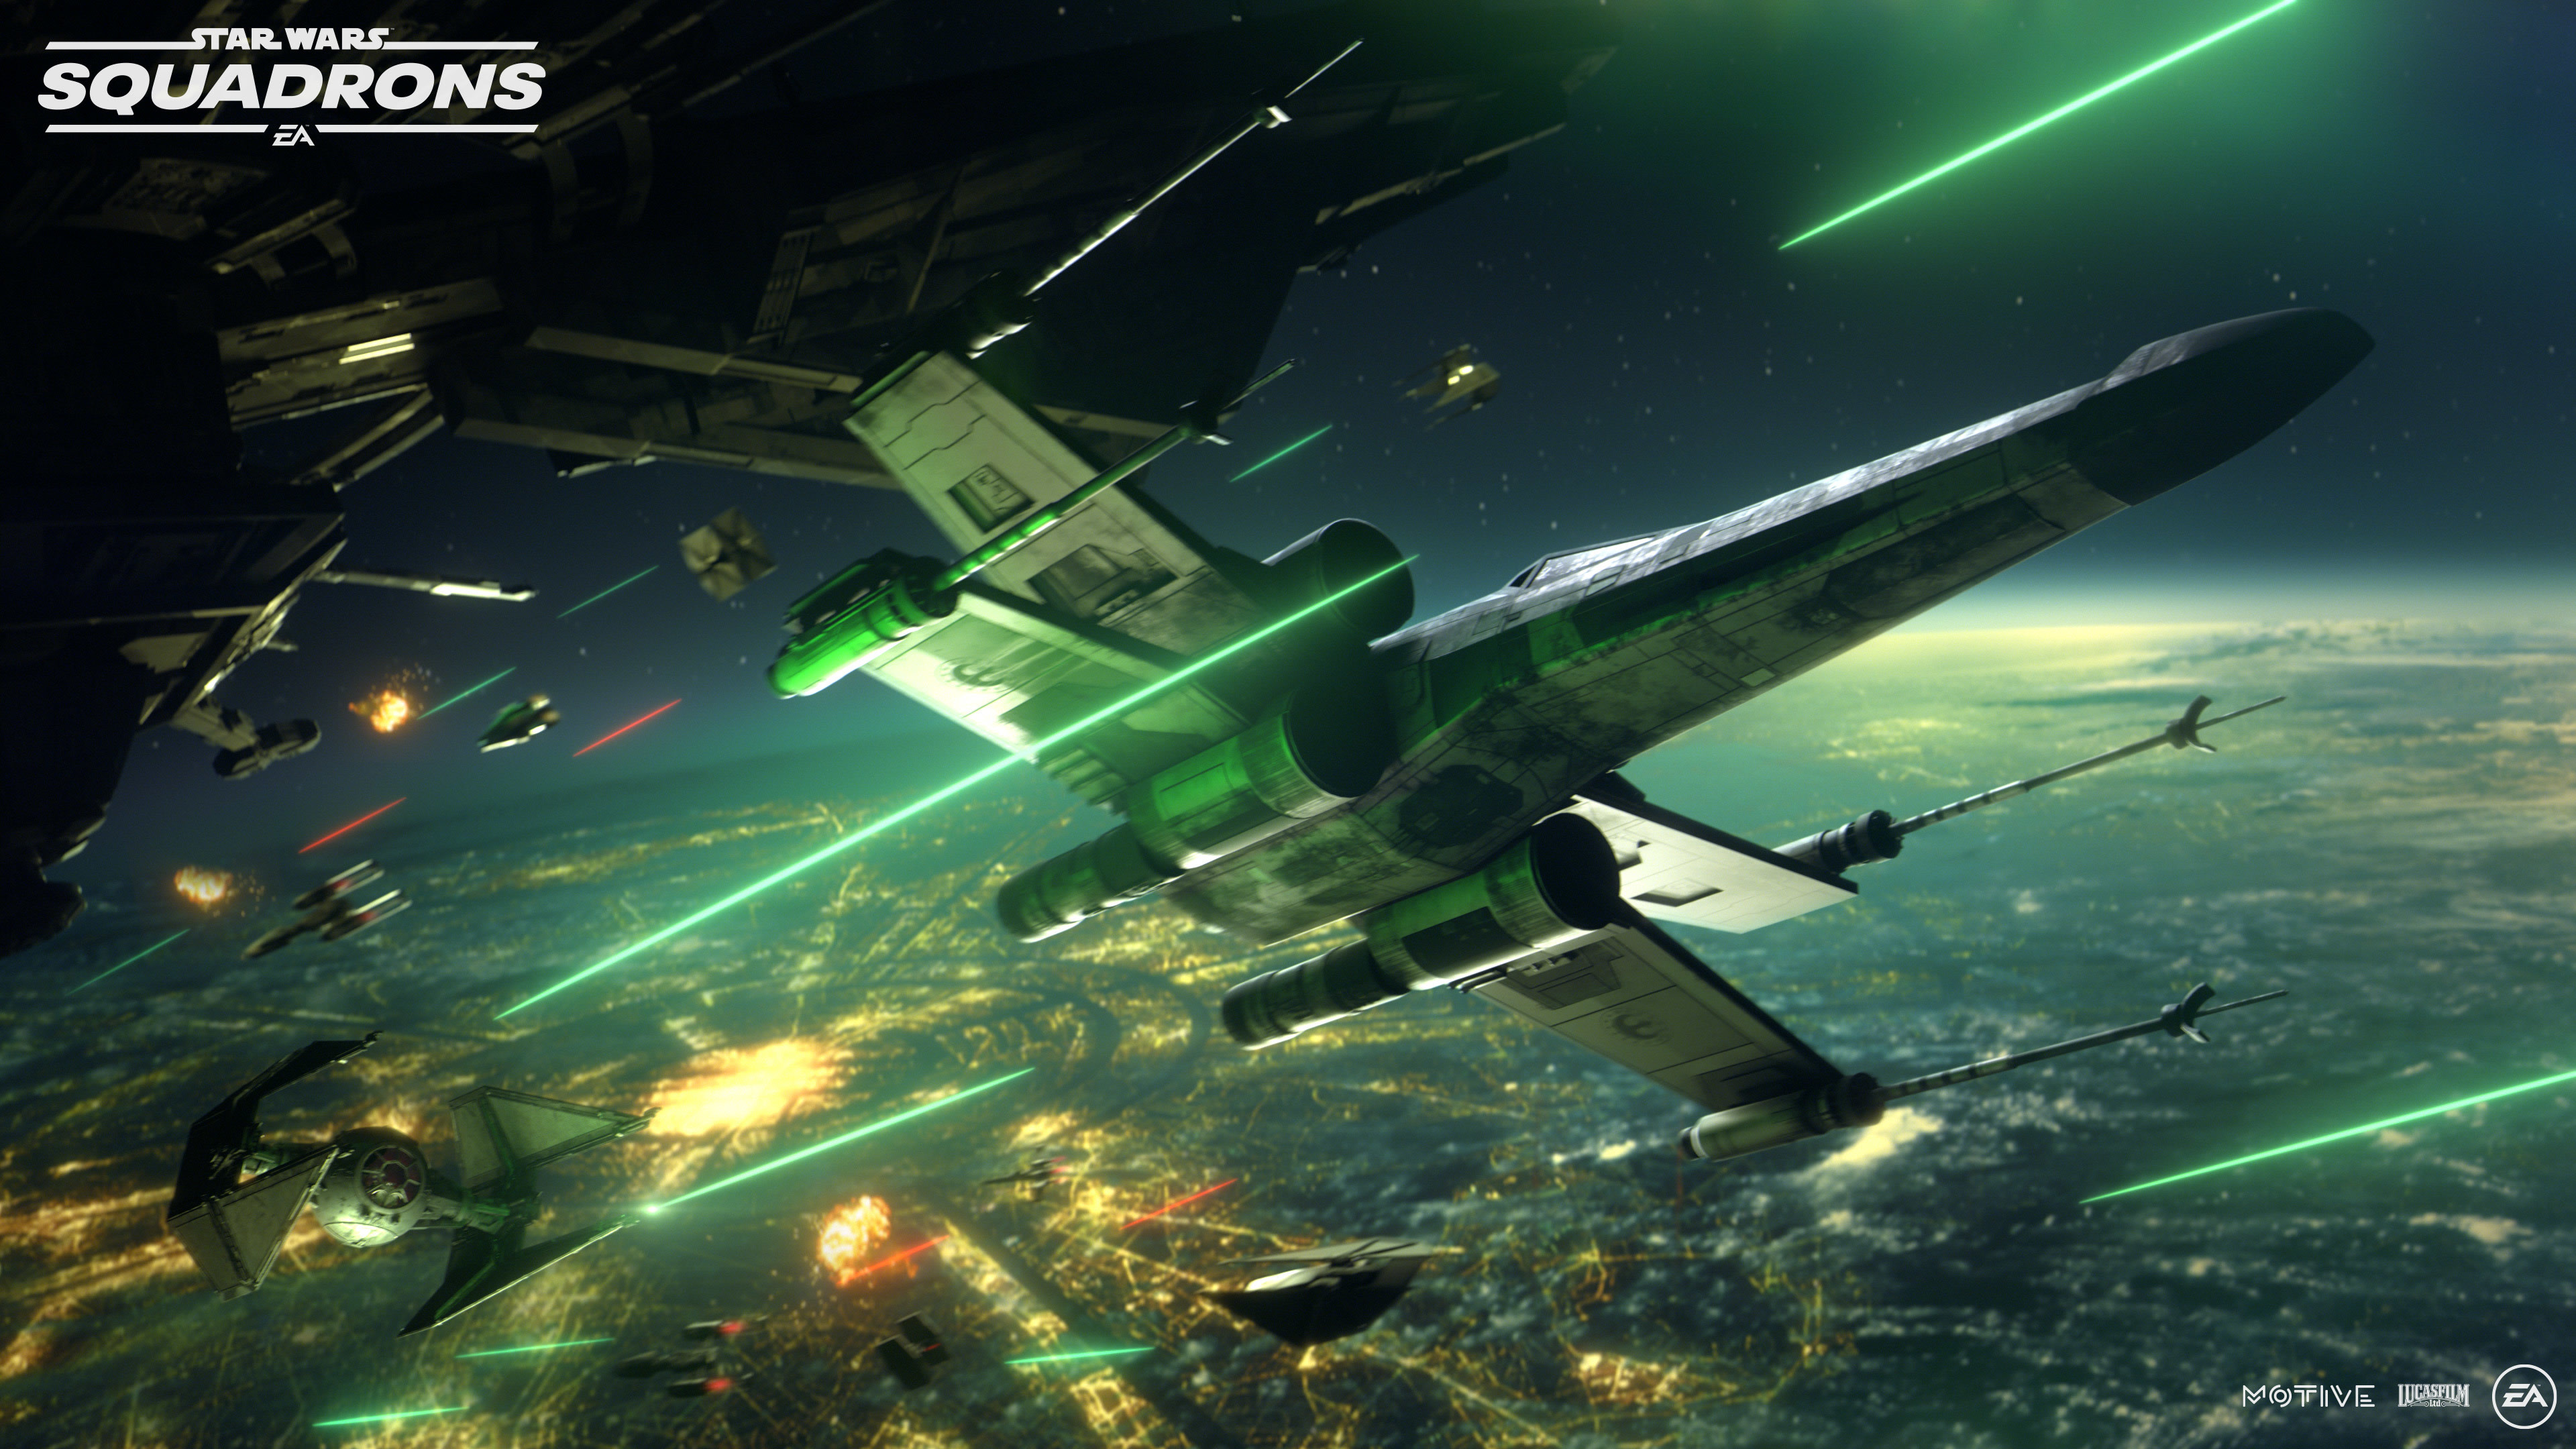 Star Wars Squadrons 4k Ultra Hd Wallpaper Background Image 3840x2160 Id 1082236 Wallpaper Abyss